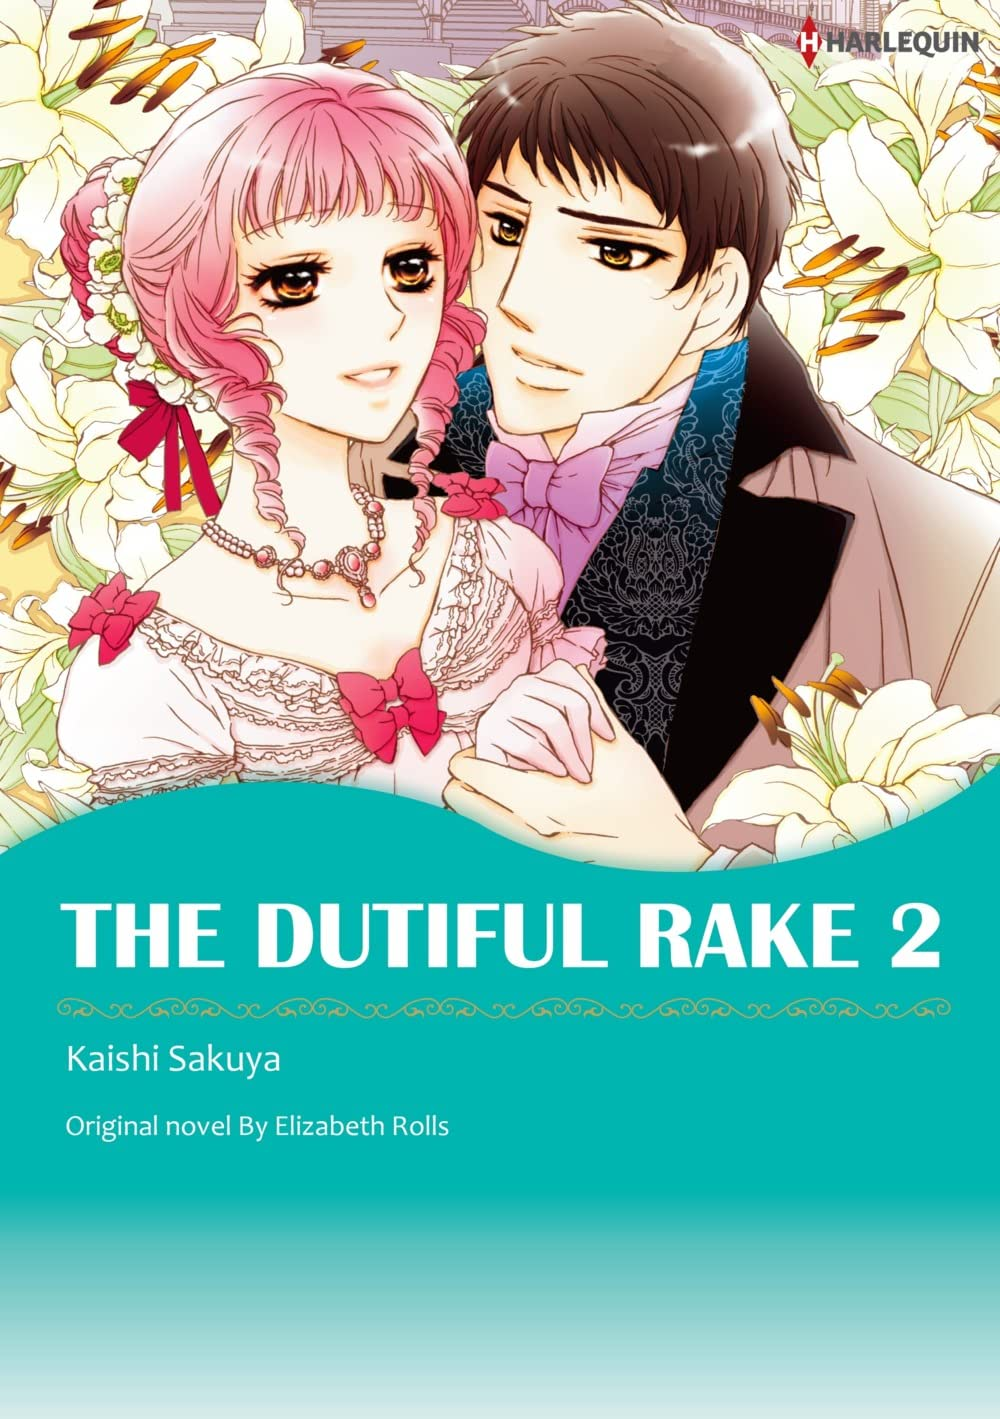 The Dutiful Rake Vol. 2